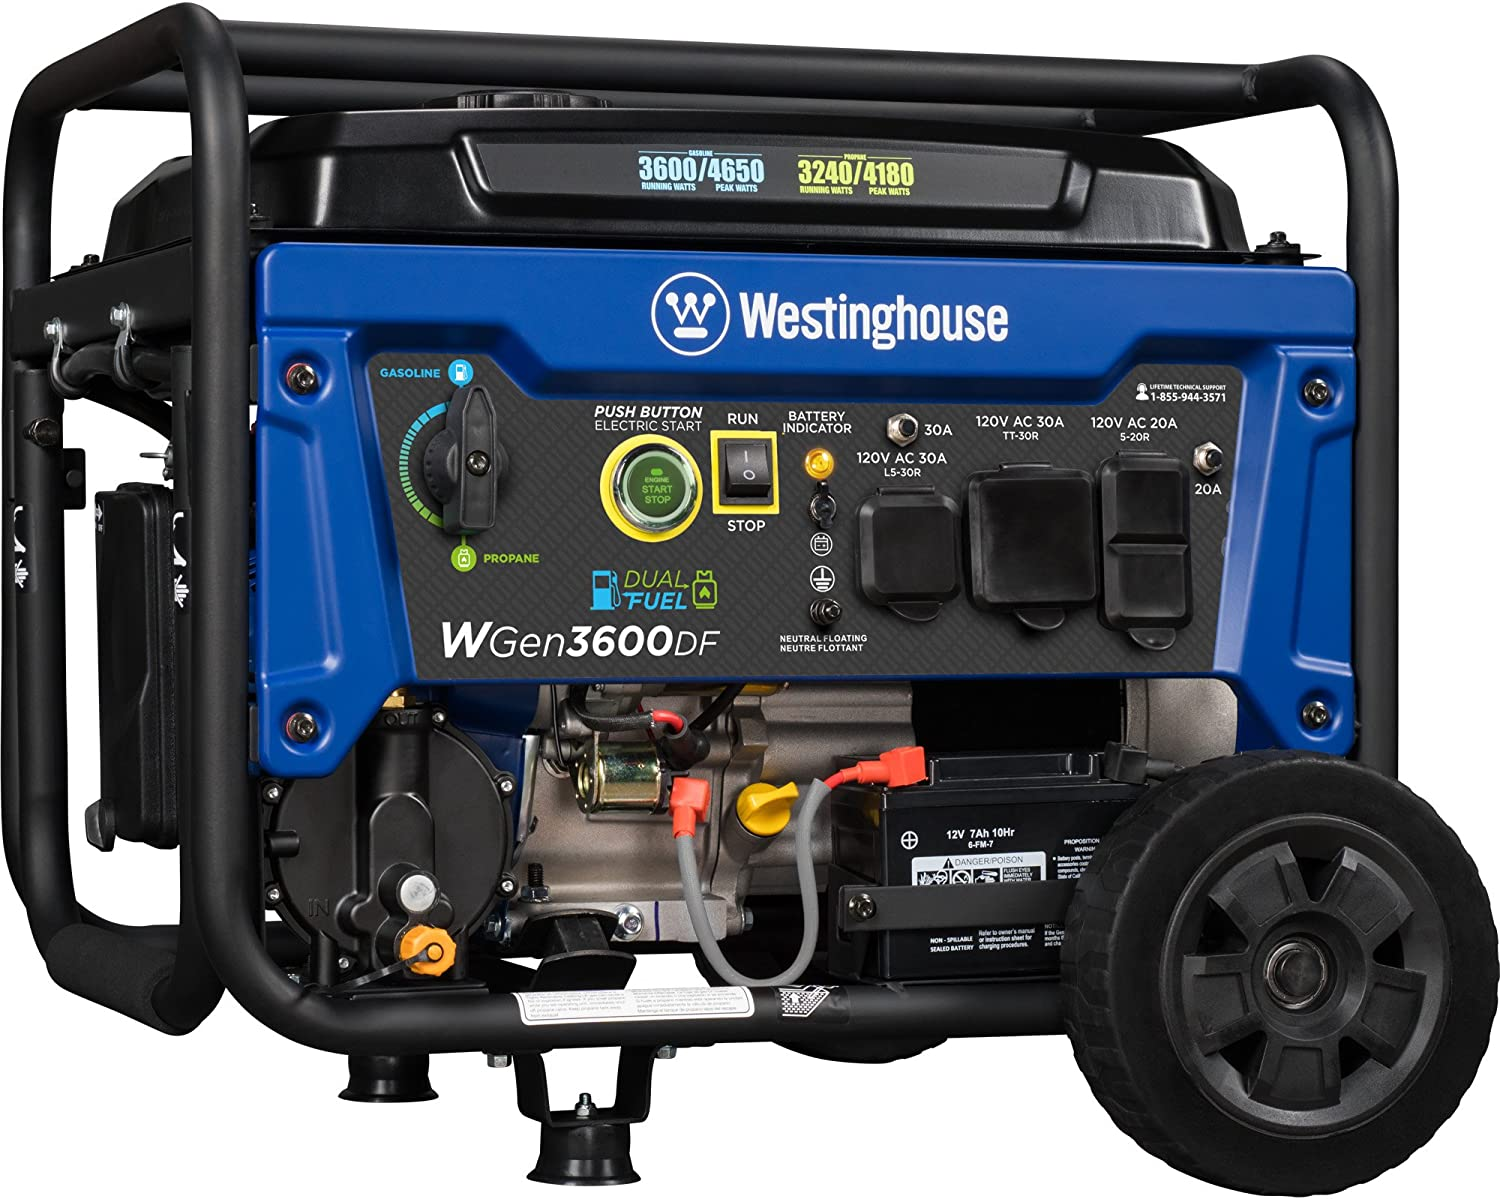 Best Home Generators For Power Outages (2021): Top 10 List 10